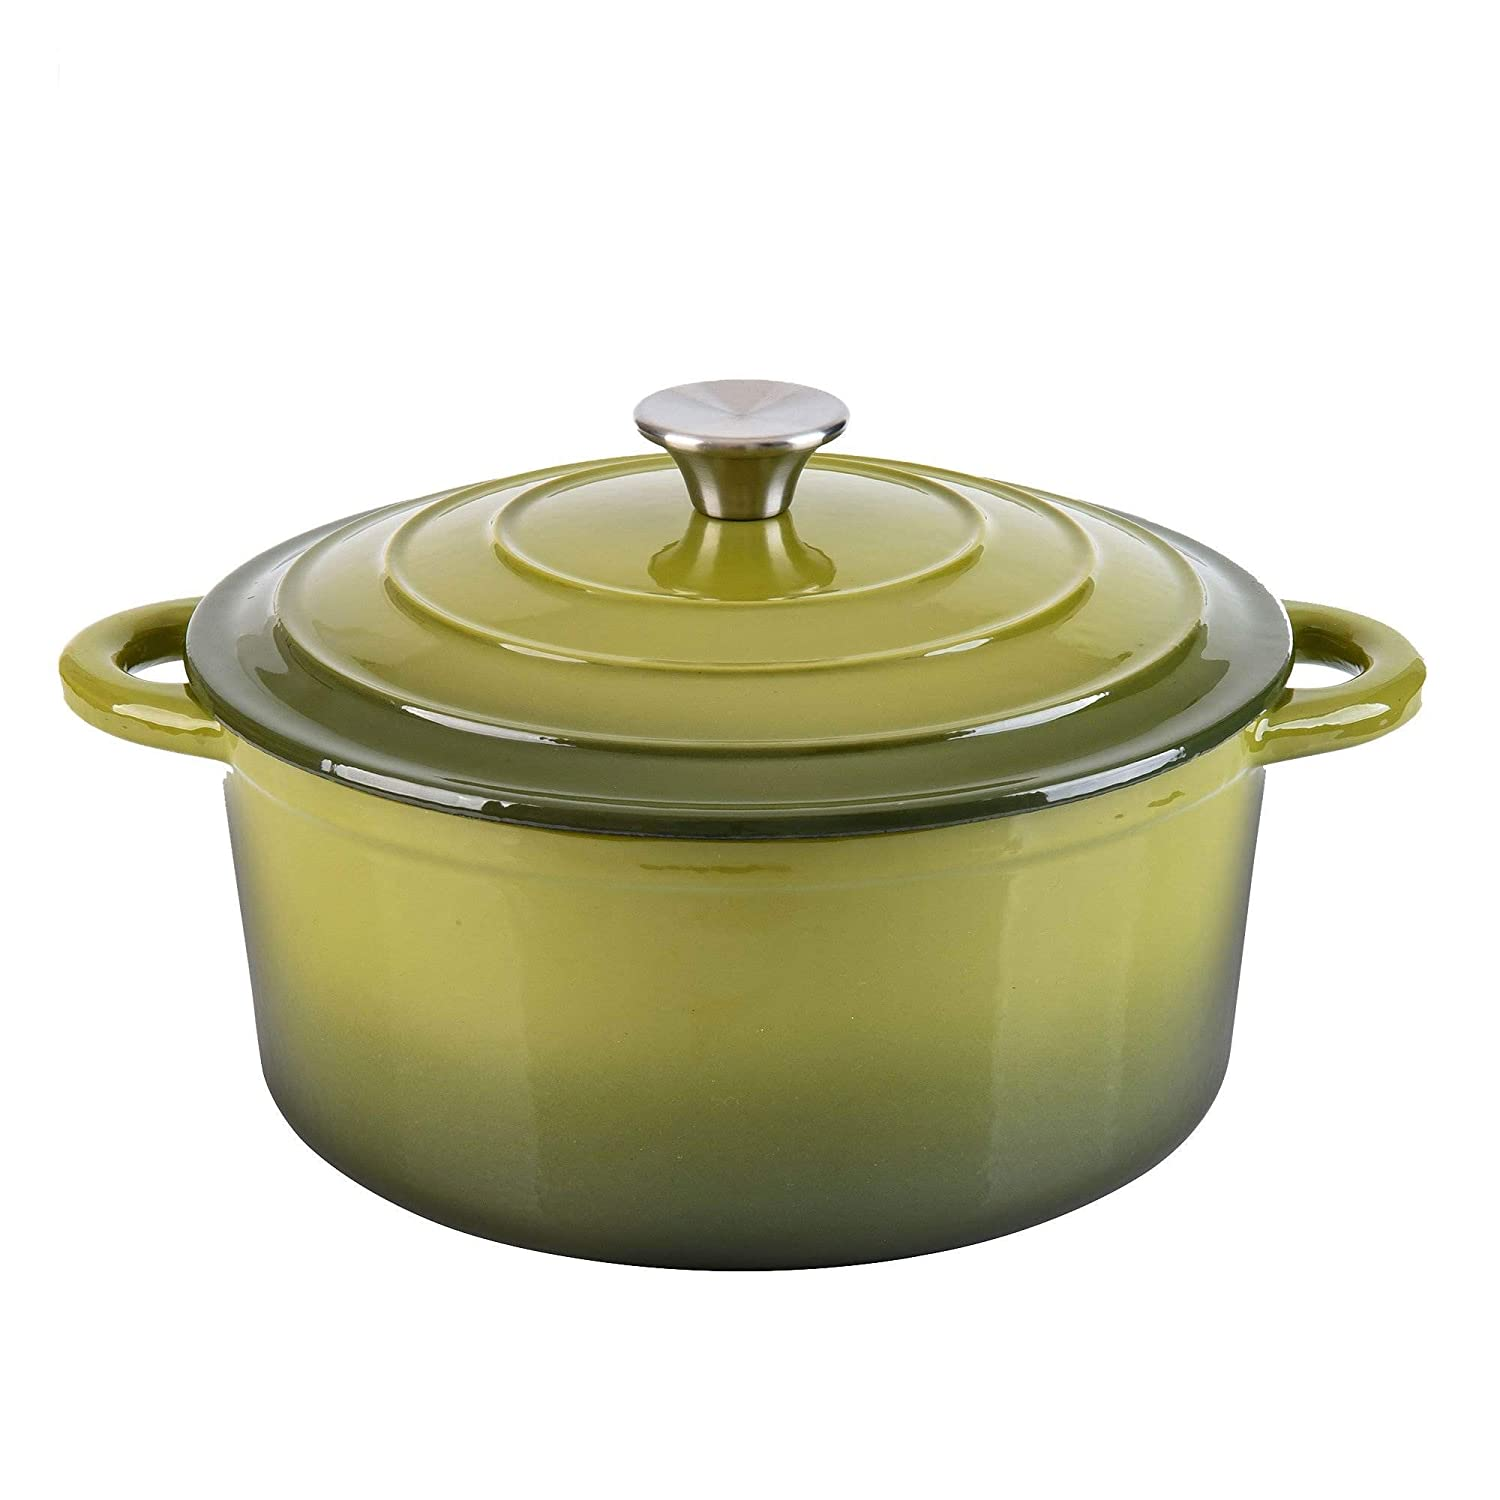 Green Hamilton Beach 5.5 Quart Enameled Cast Iron Covered Round Dutch Oven Pot